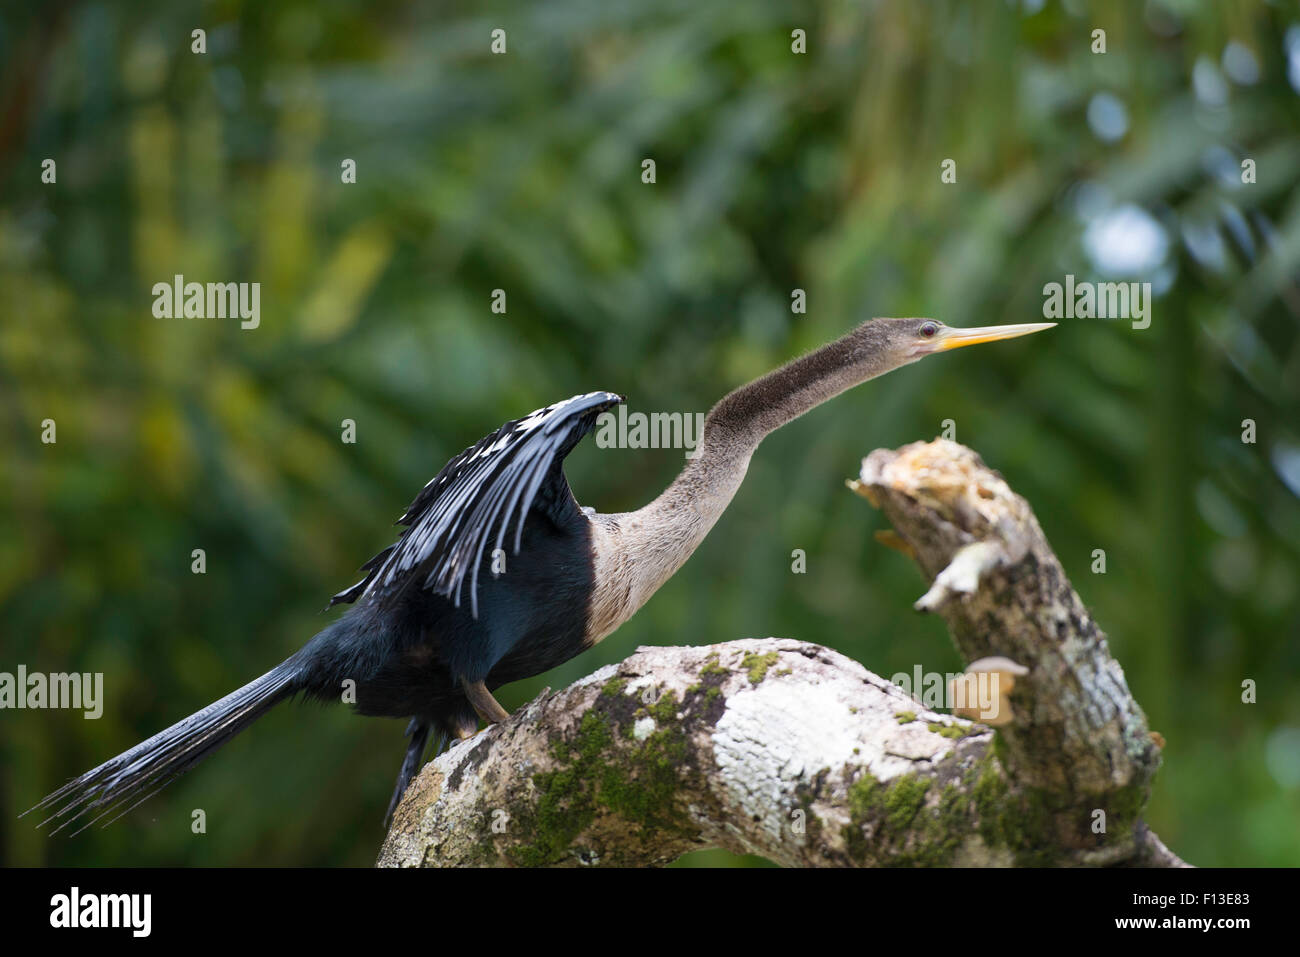 Wildlife in Costa Rica, tropical bird Anhinga. Rufous Darter or snakebird on a dead branch in nature. - Stock Image